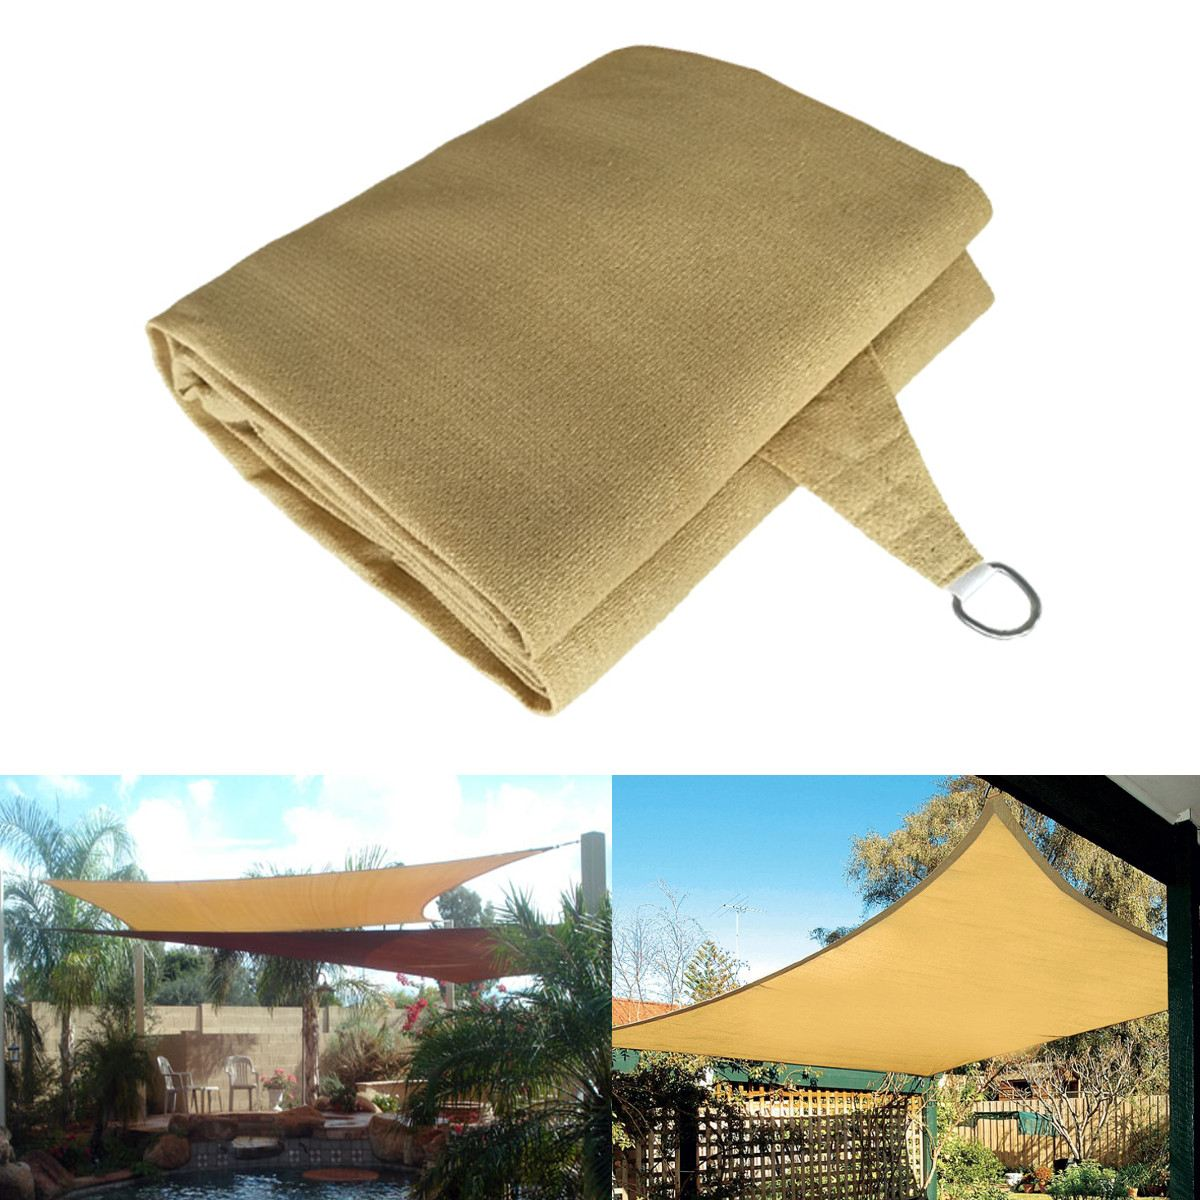 Outdoor 6X4m Sun shelter UV Protection Polyester Sun Shade Sail Garden Top Canopy Cover Patio Pool Waterproof Rectangle Awning zhuoao outdoor 3 4persons pergola canopy tent awning large outdoor rain uv shade with rain cover include one set front pole